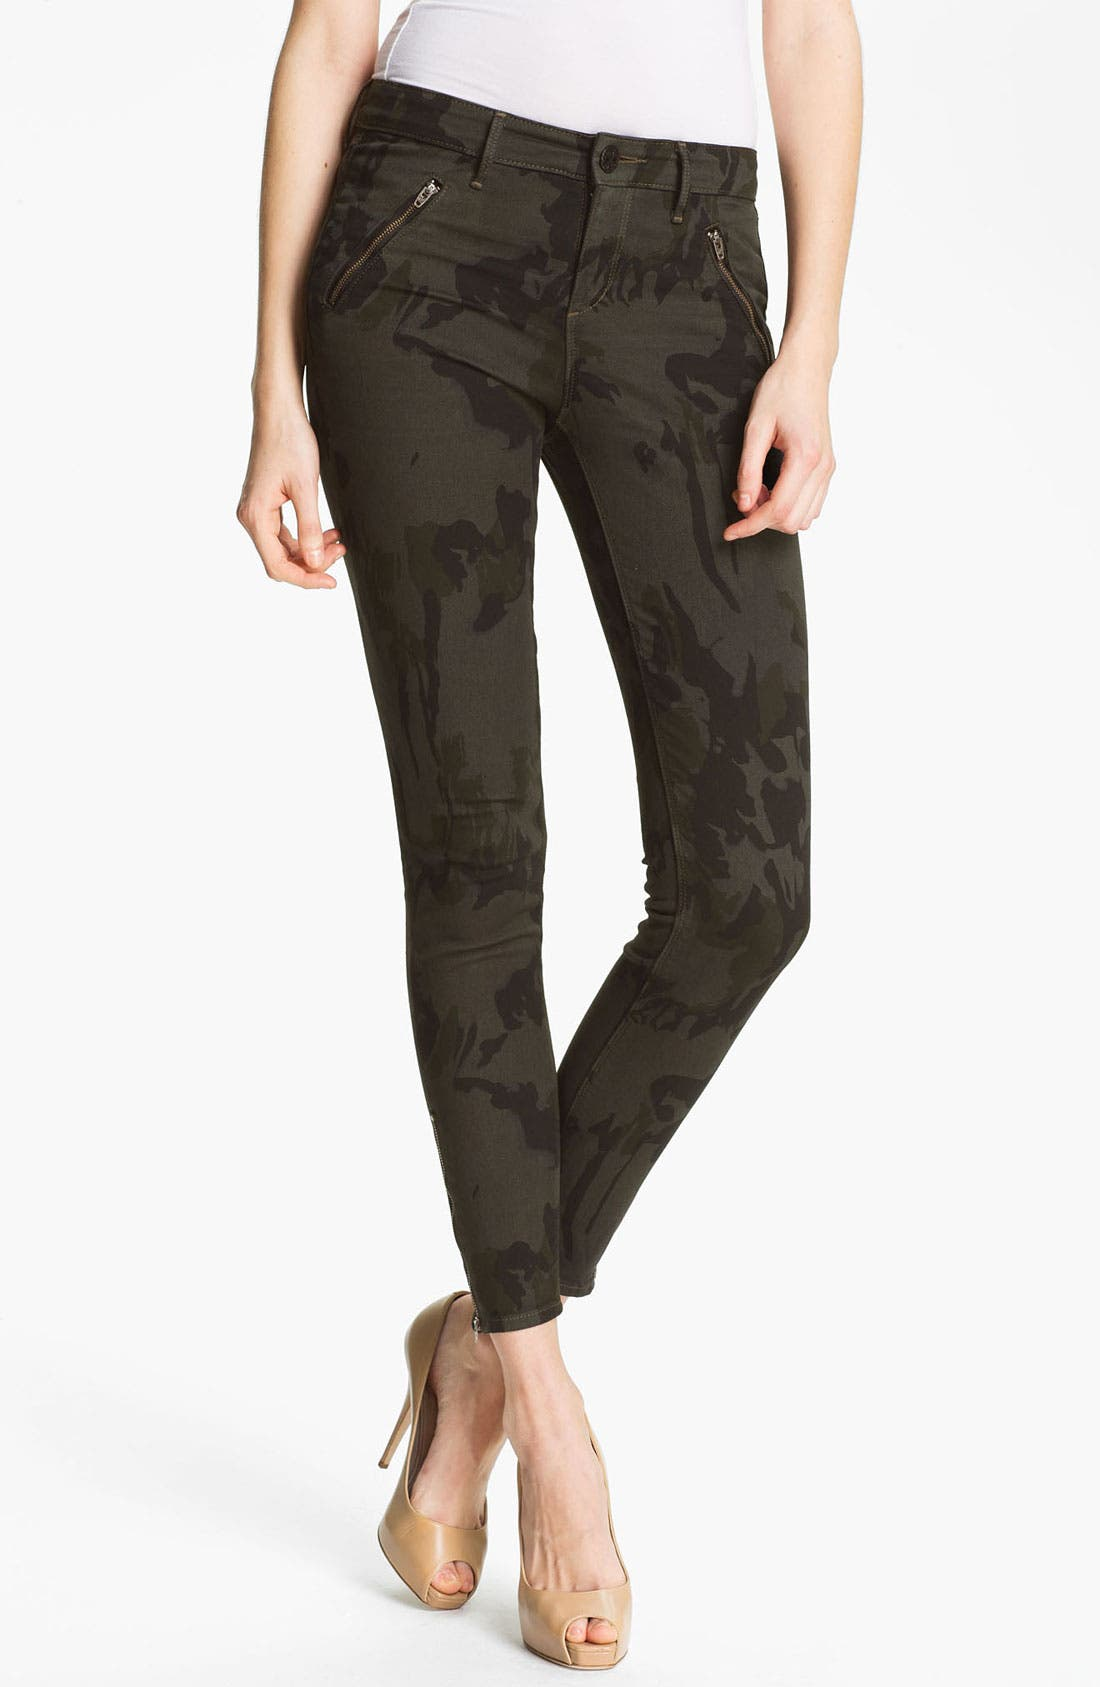 Alternate Image 1 Selected - Habitual 'Amalia' Digital Camo Print Stretch Jeans